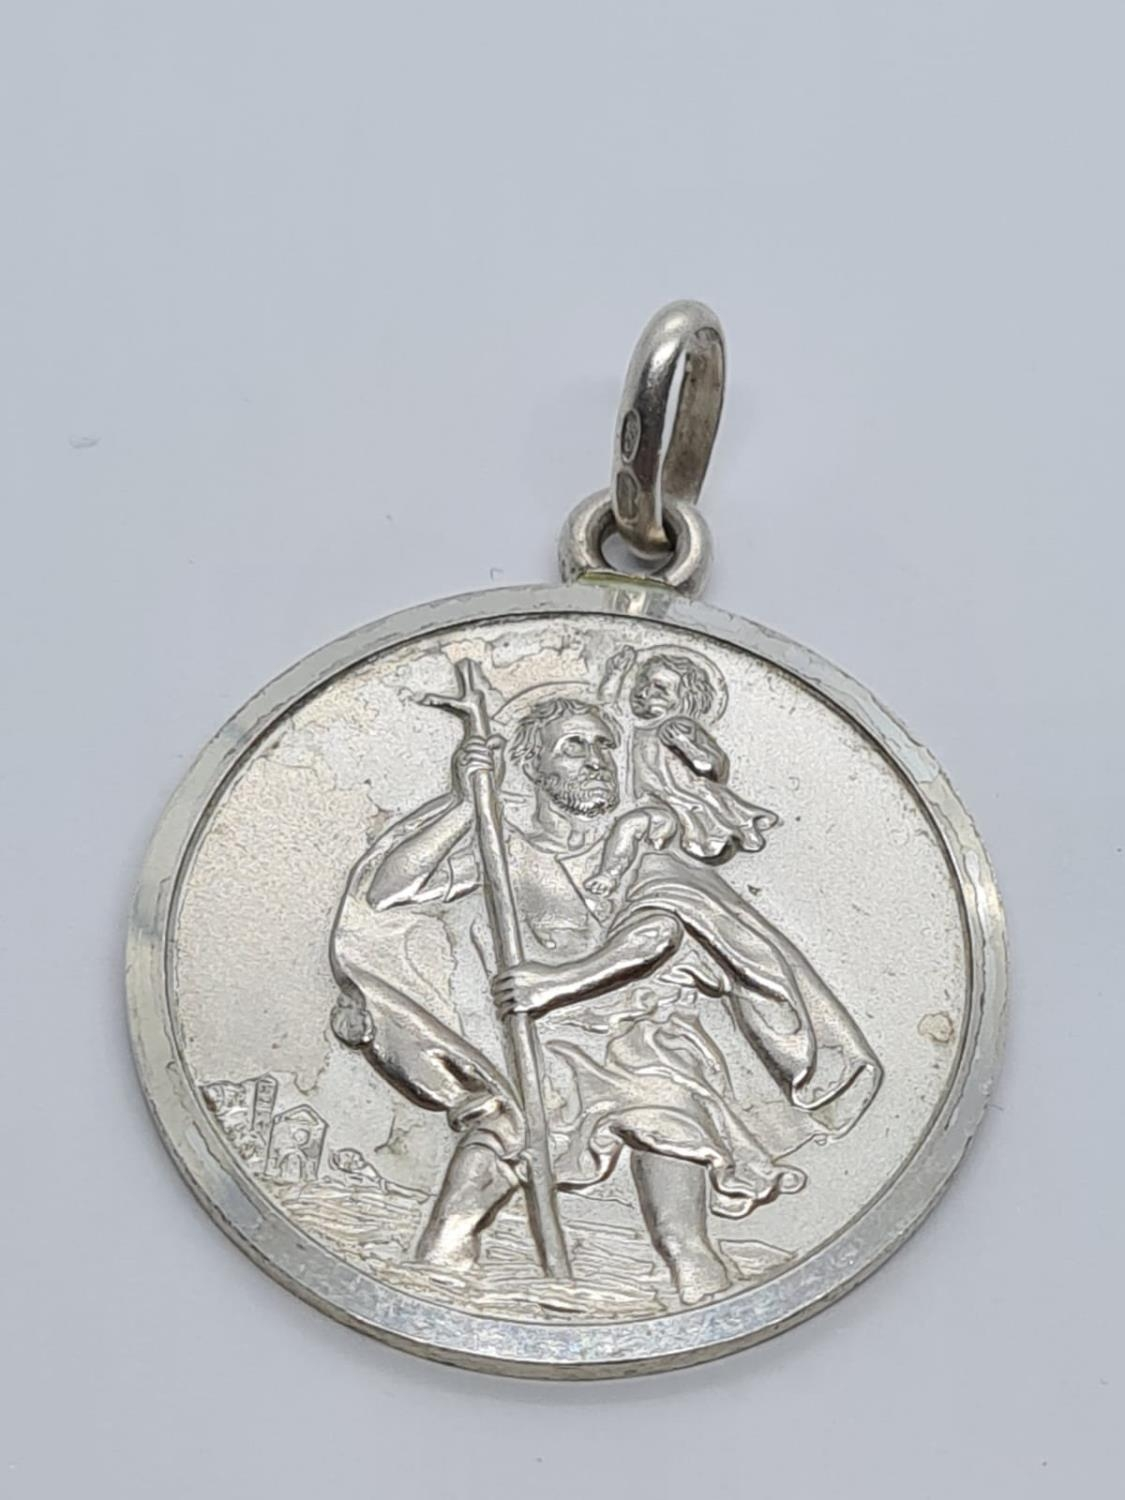 STERLING SILVER LARGE ROUND ST CHRISTOPHER PENDANT WEIGHT 8.5G AND 34MM DIAMETER APPROX